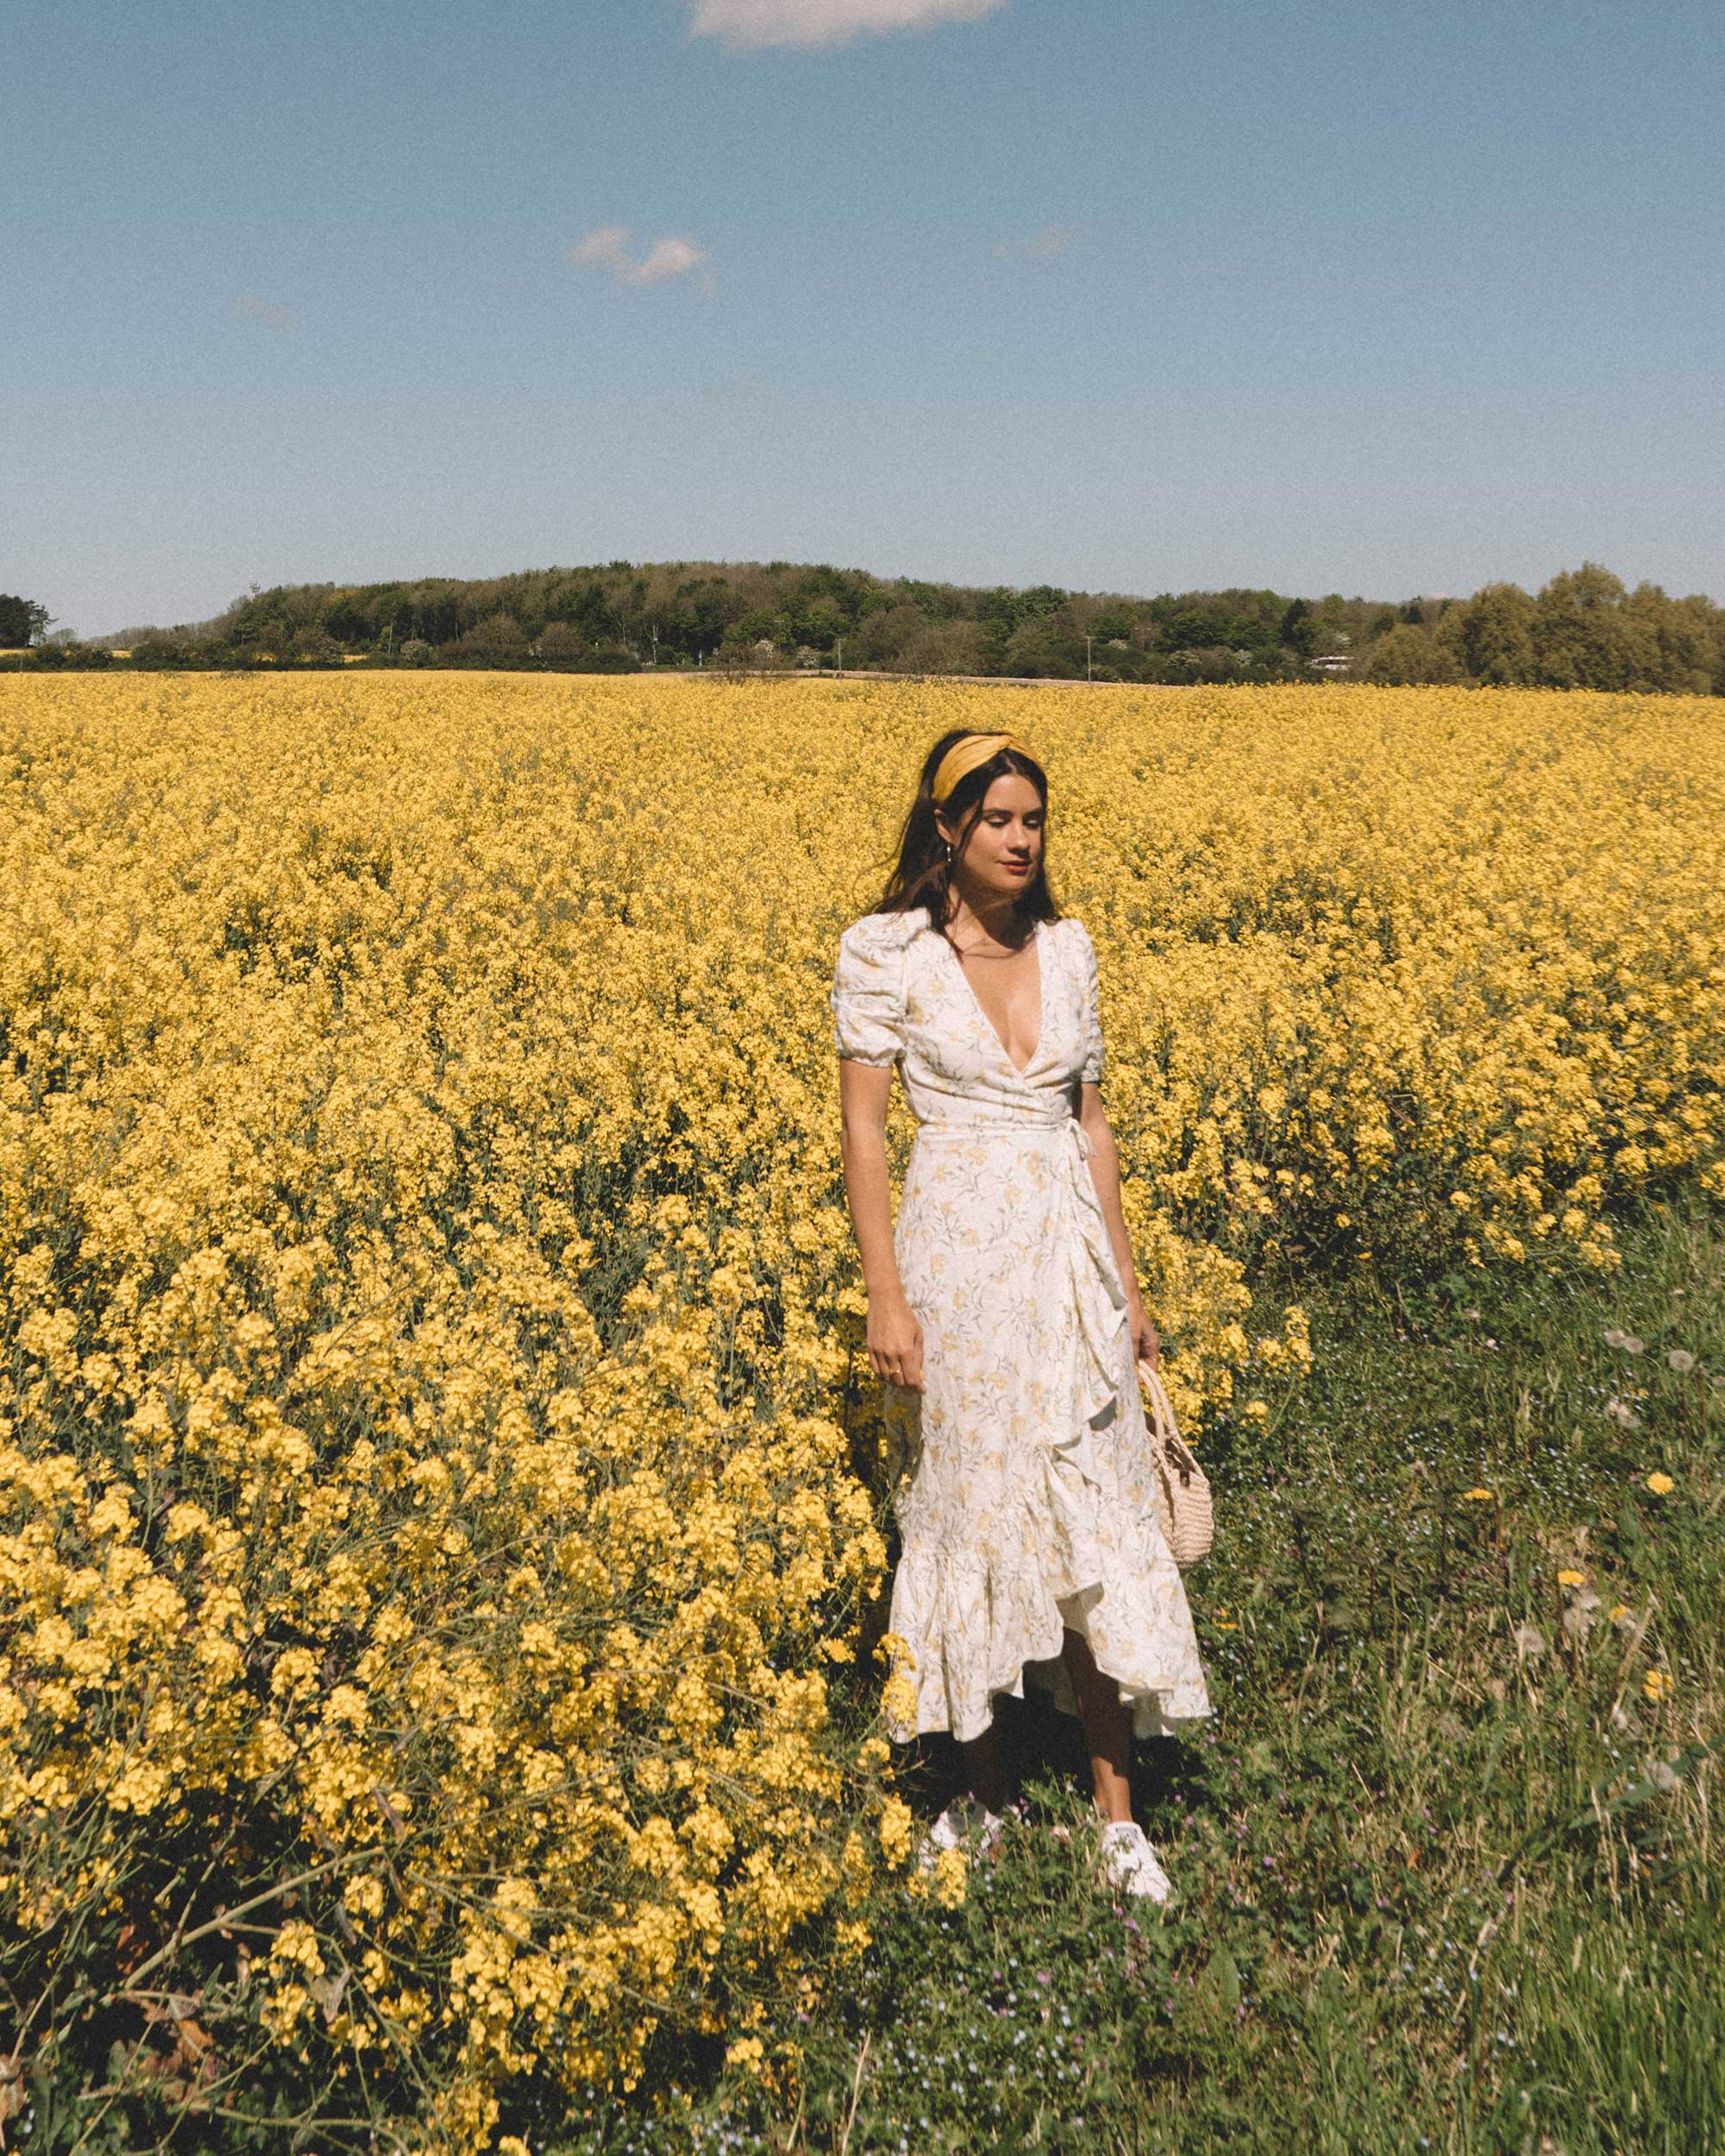 Sarah Butler of Sarah Styles Seattle wears And Other Stories Ruffled Linen Wrap Midi Dress and round woven bag in England Countryside for the perfect floral summer dress | @sarahchristine 17.jpg